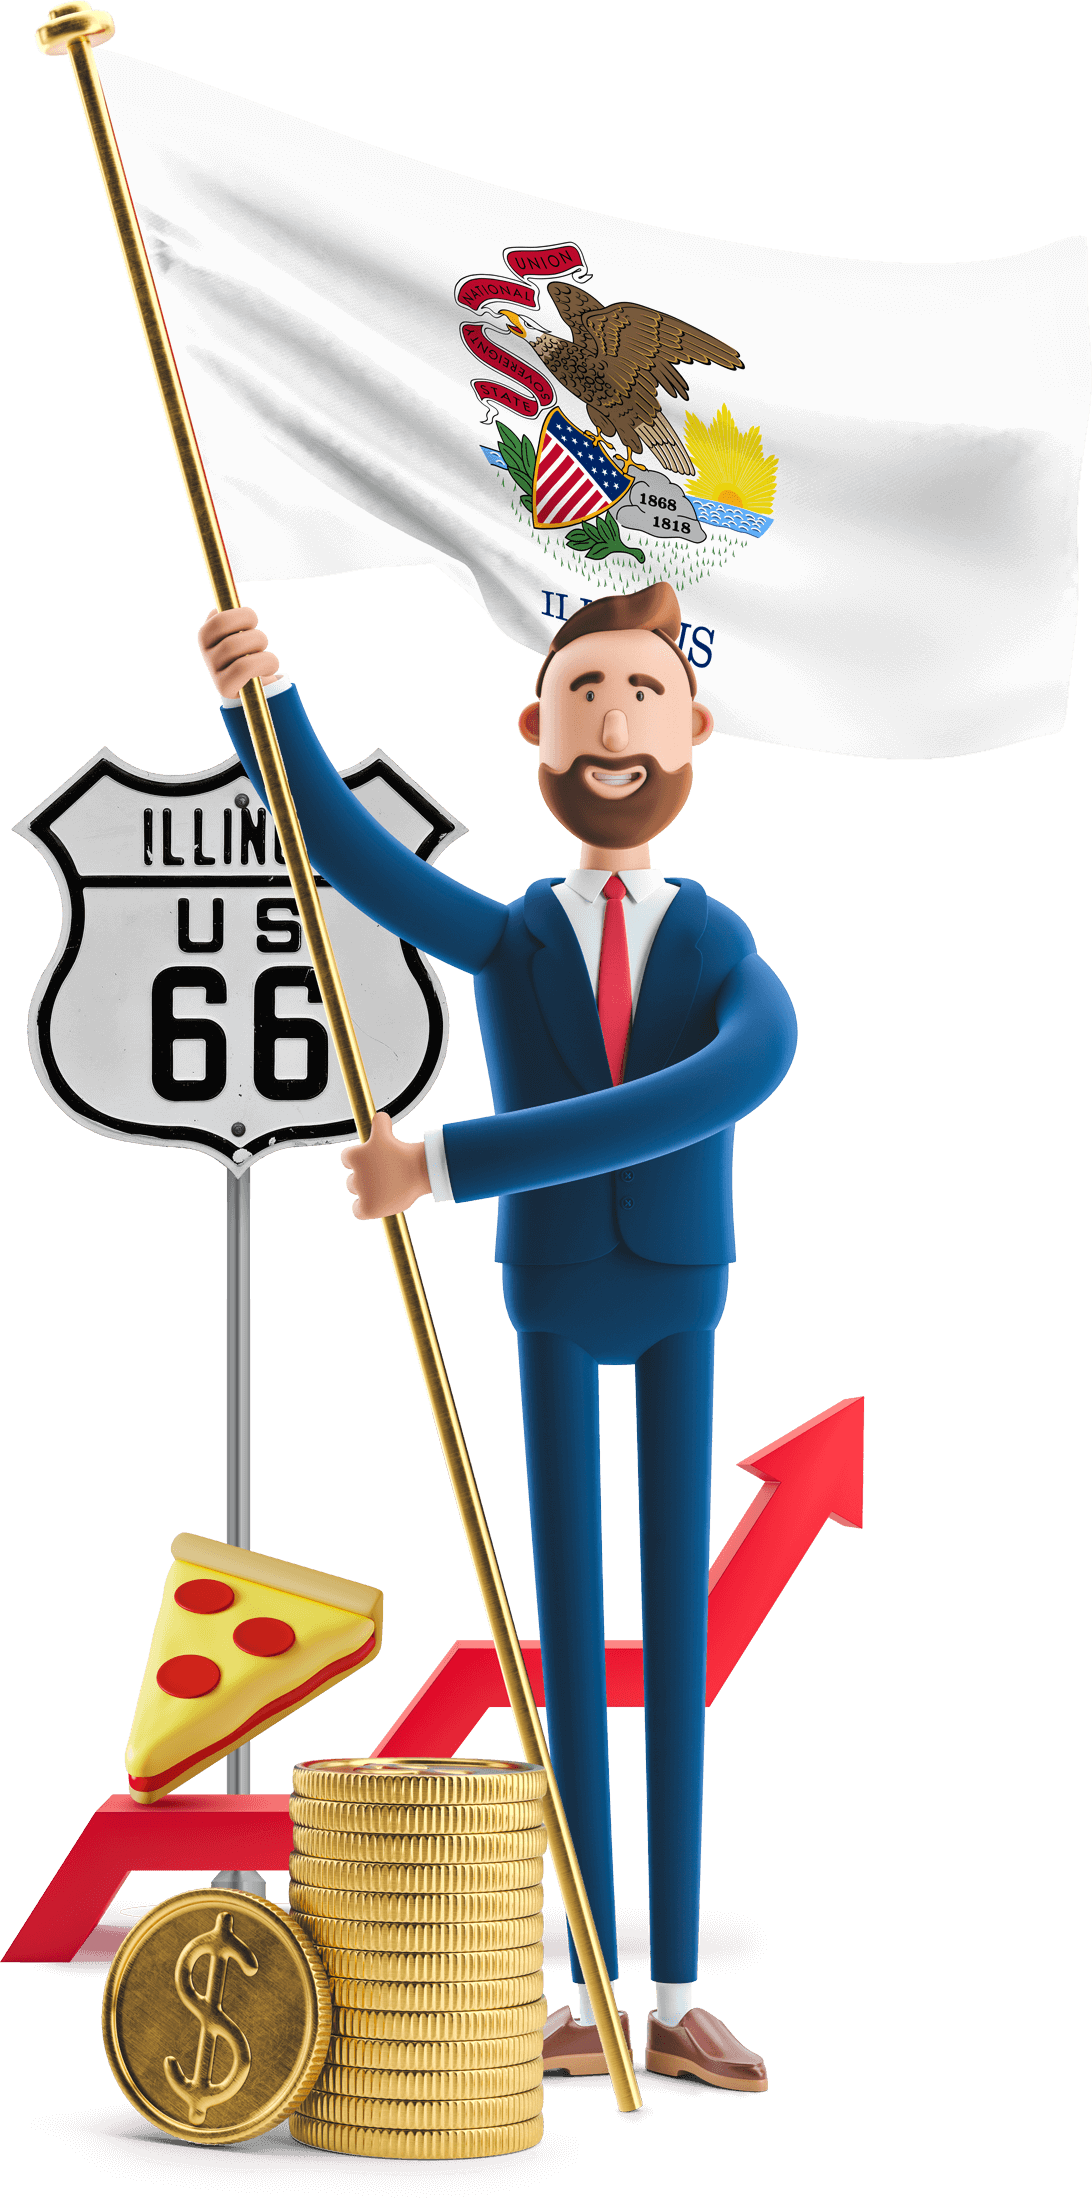 Illinois flag held by MetCredit USA businessman who's standing beside the Route 66 sign and a piece deep dish pizza is balancing nearby